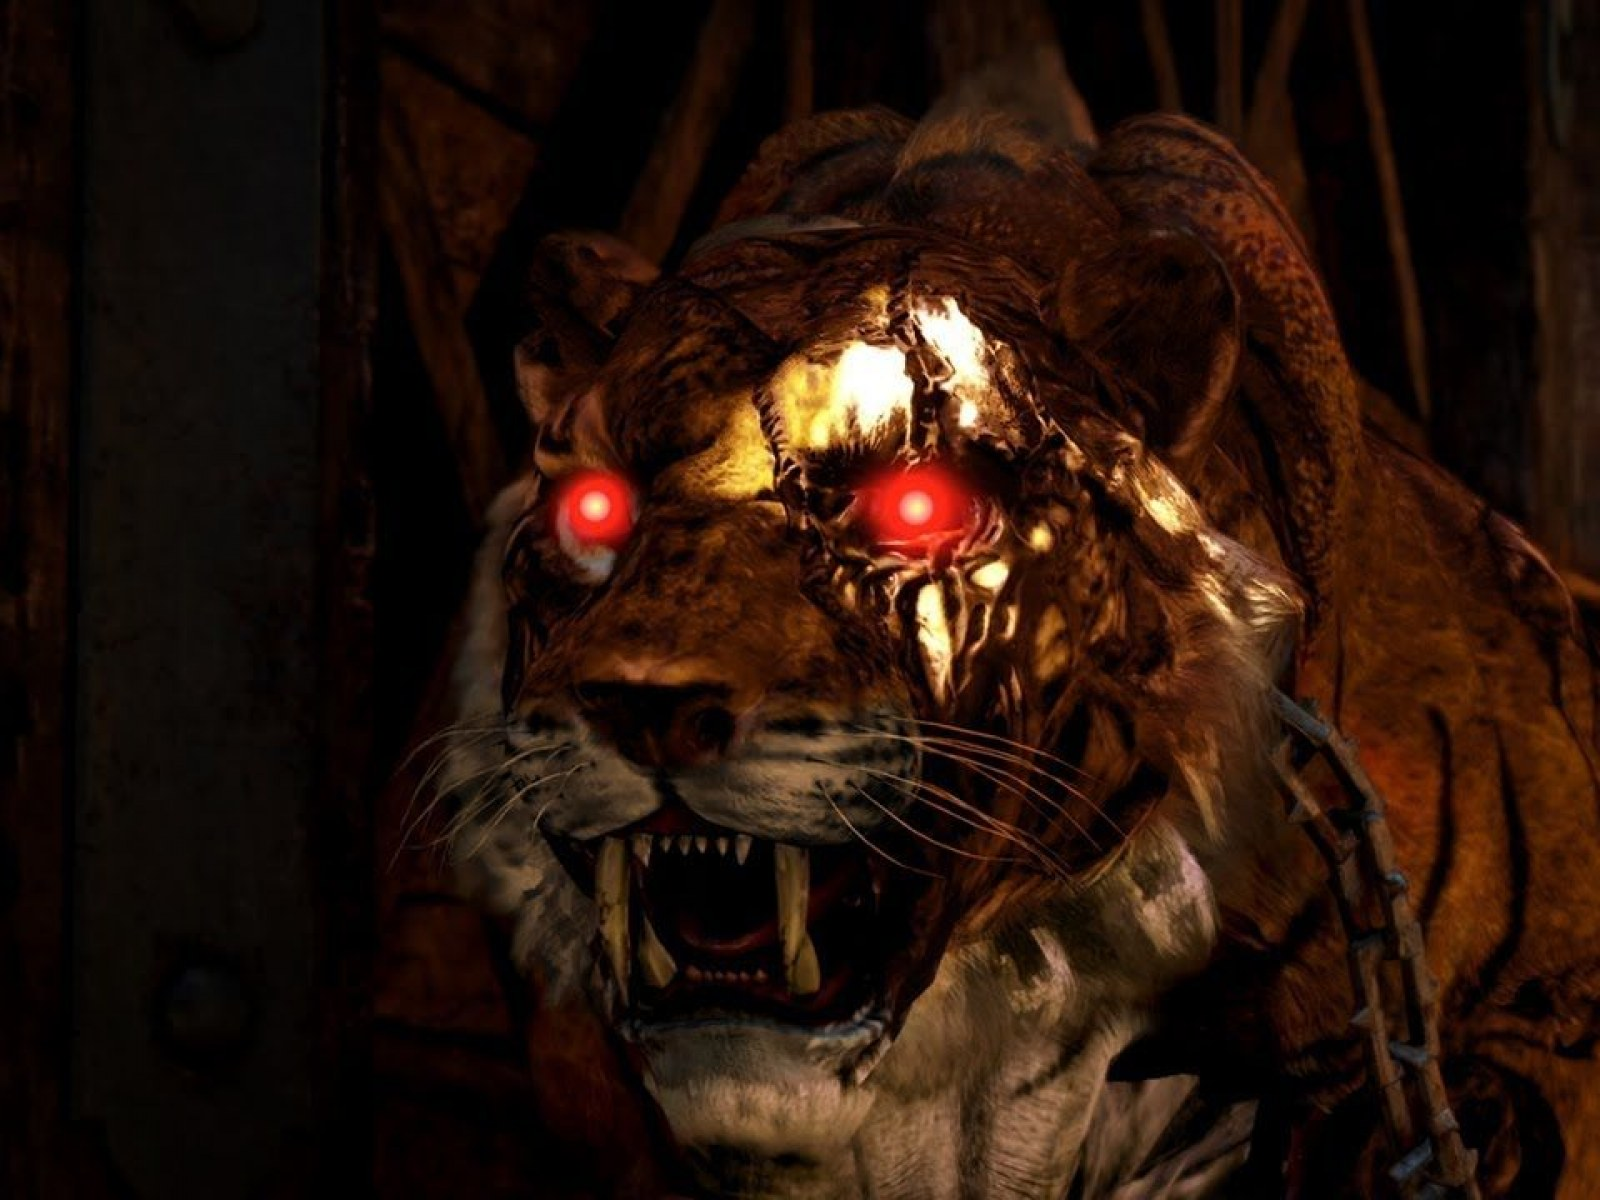 Call Of Duty Black Ops 4 Zombies Story Trailer Reveals Plot